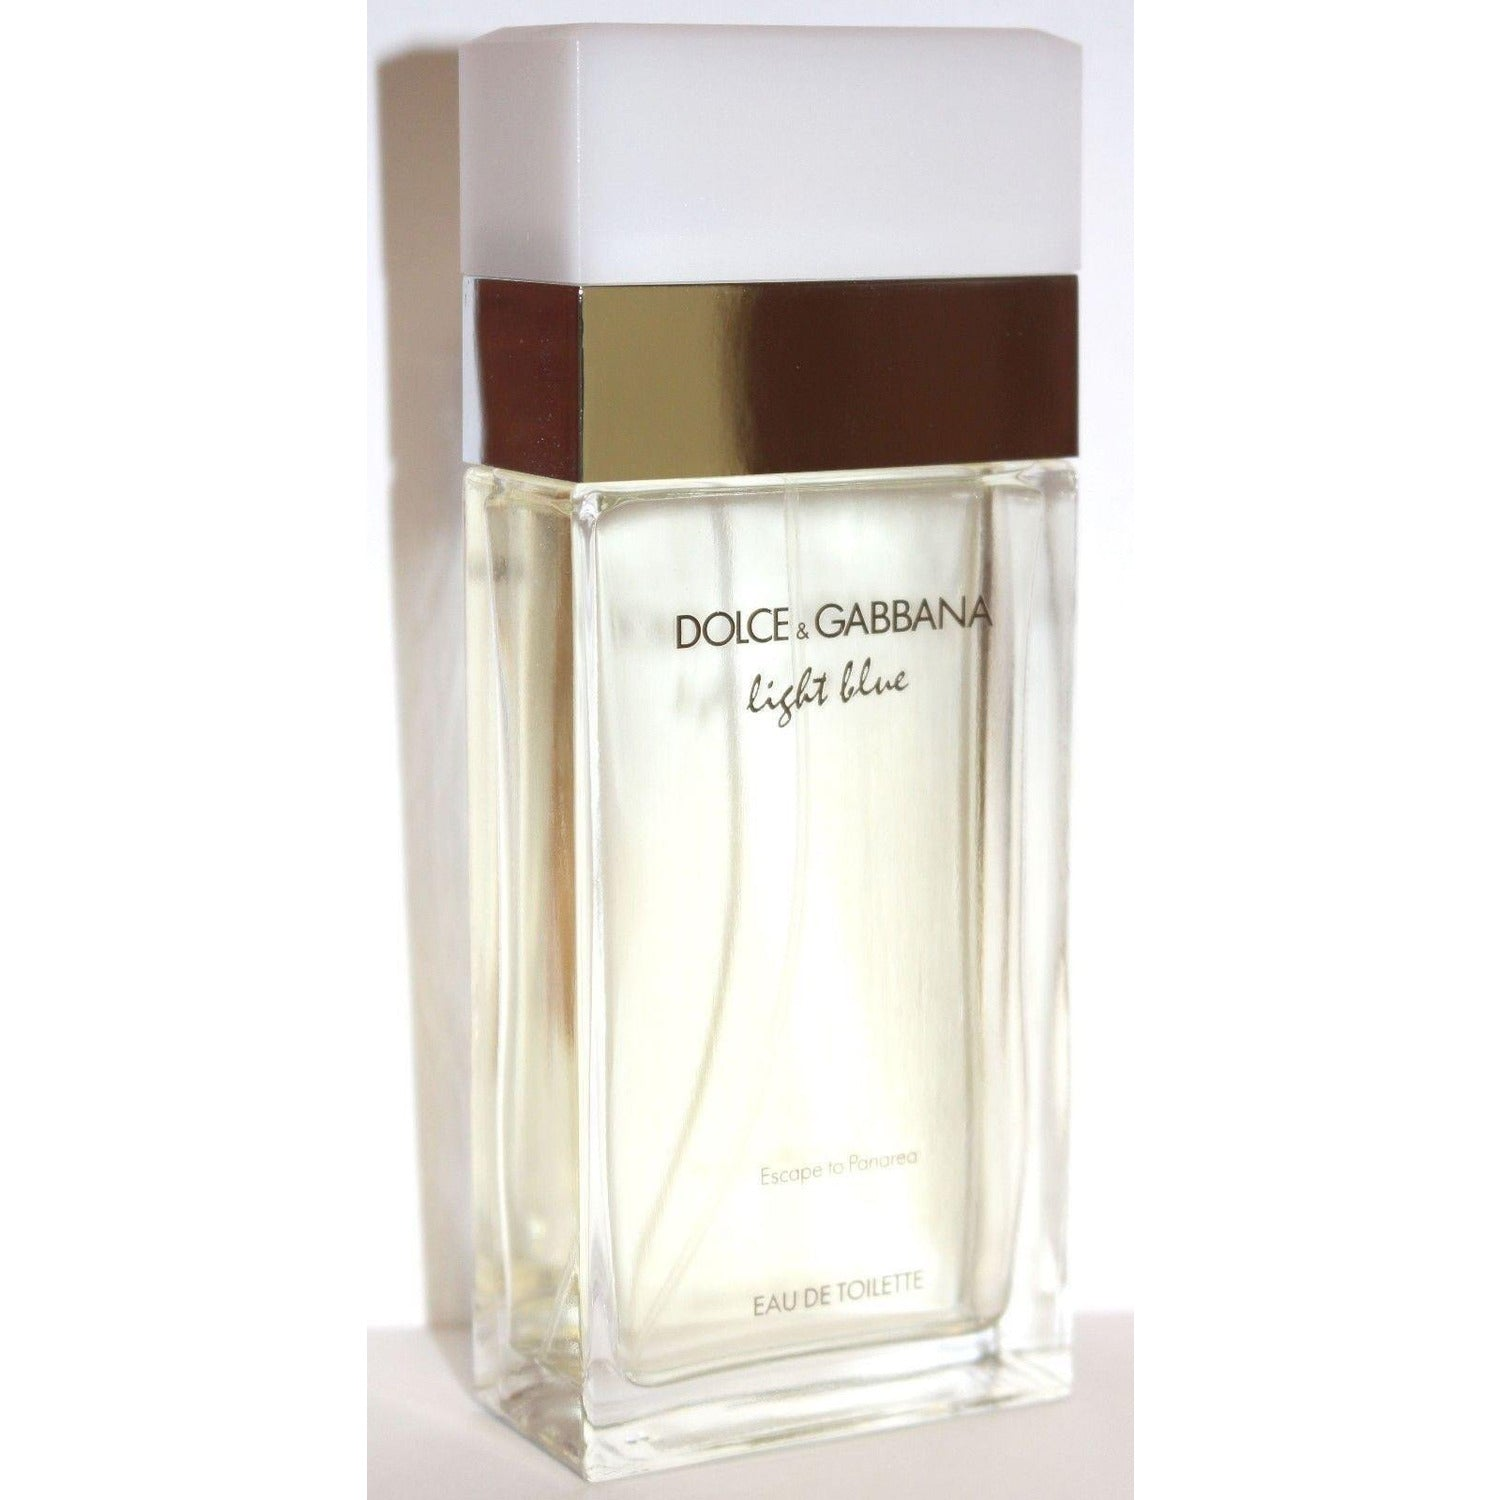 d-g-light-blue-escape-to-panarea-dolce-gabbana-perfume-3-3-3-4-oz-edt-new-tester-with-cap